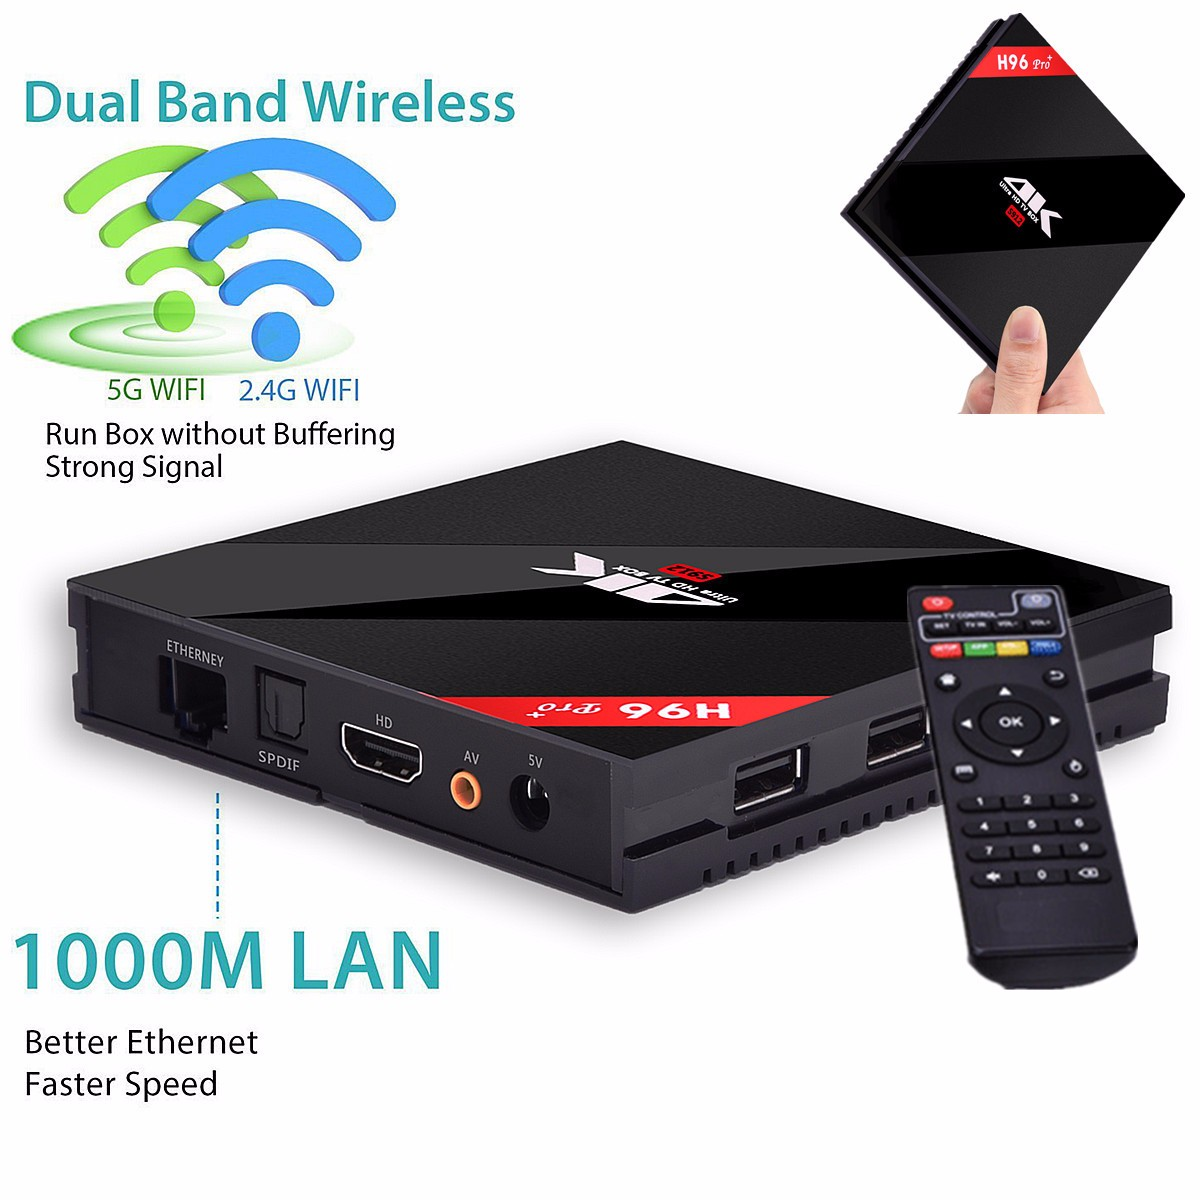 H96 PRO Android 6.0 Amlogic S912 Octa Core TV Box BT4.1 3G/32G soundvision Dual Wifi 4K Smart TV Box